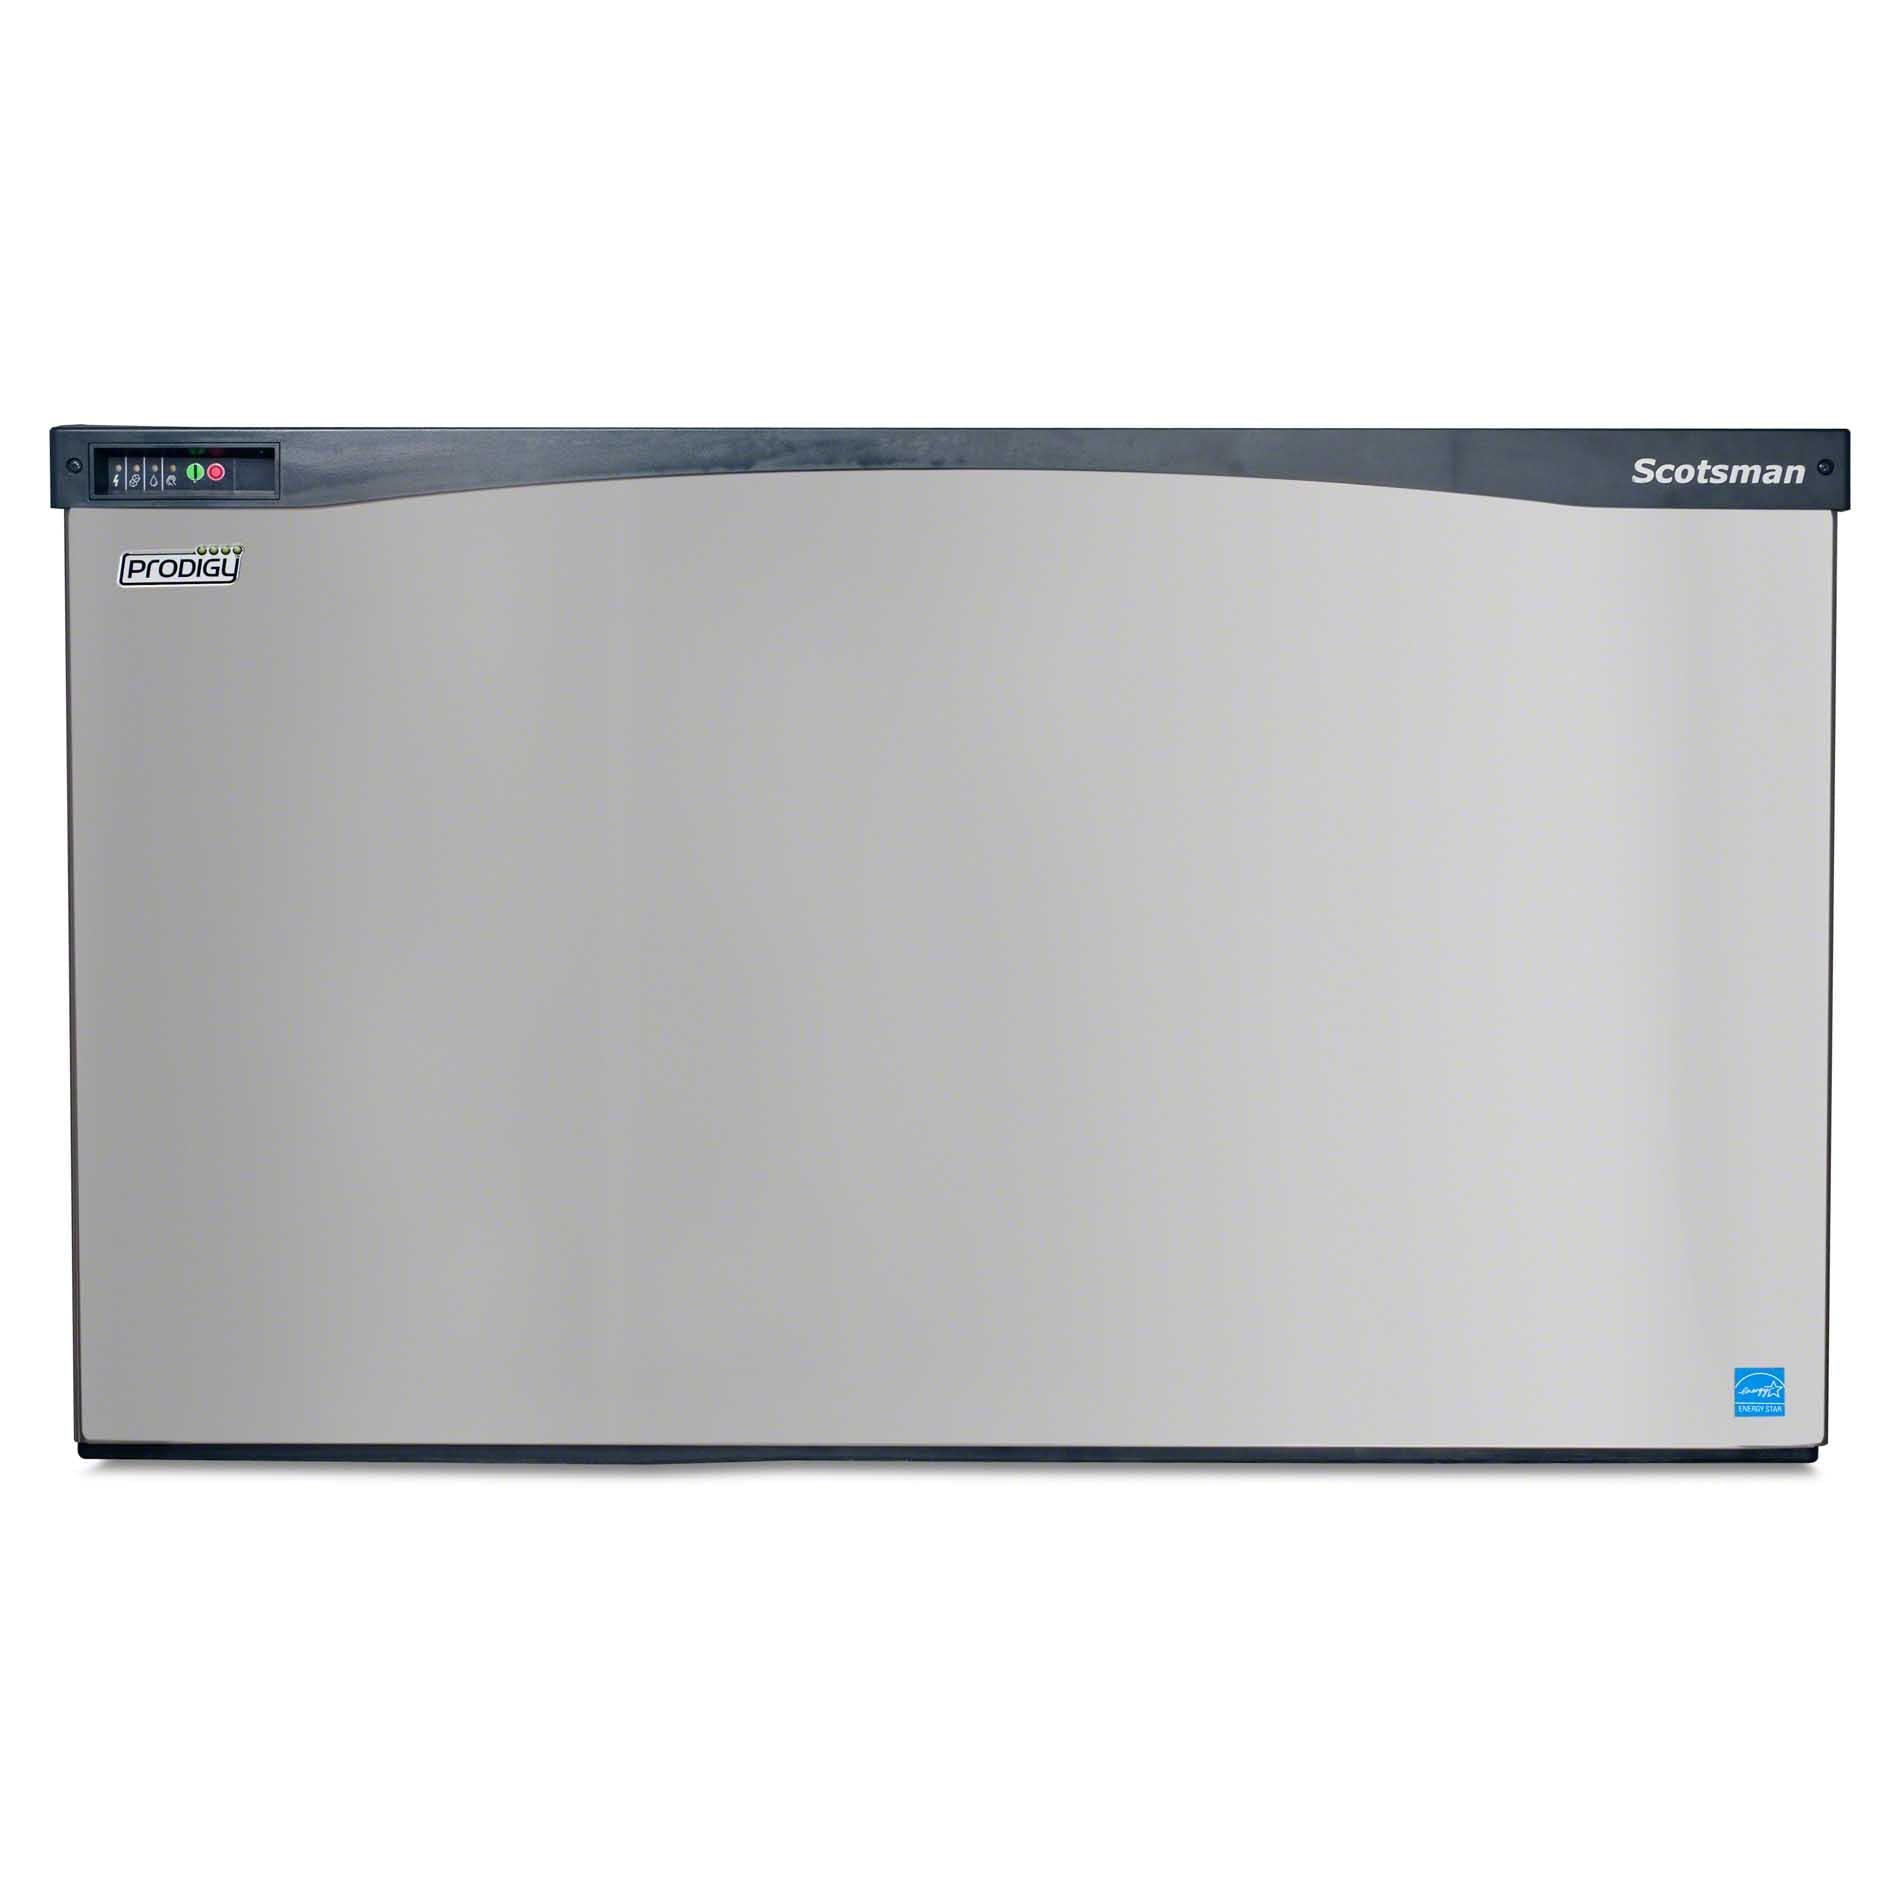 Scotsman - C1448MR-32A 1357 lb Full Size Cube Ice Machine - Prodigy Series - sold by Food Service Warehouse